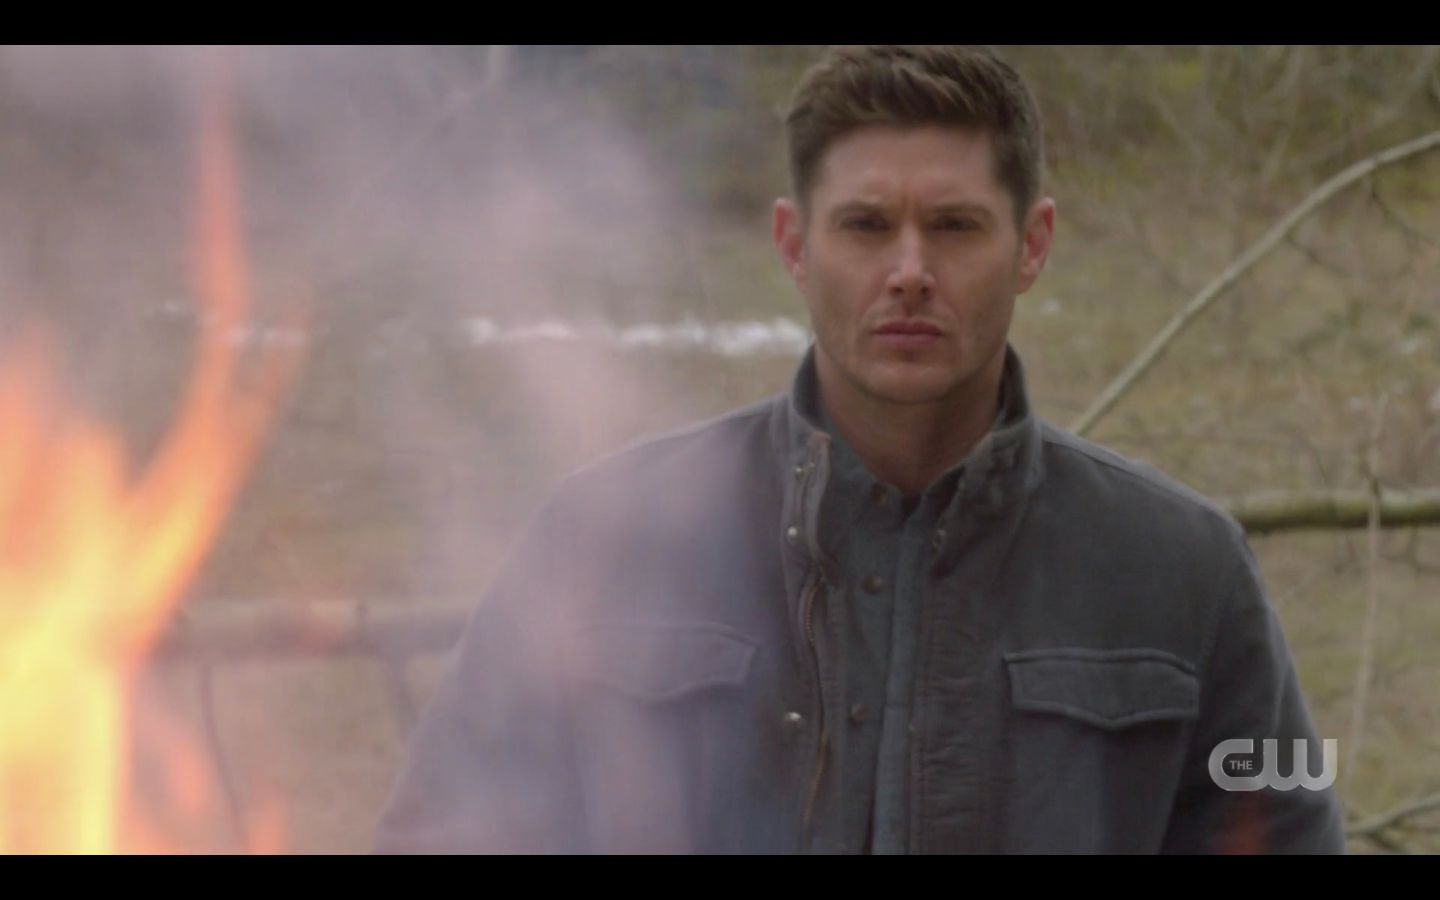 Dean Winchester stands stoicly watching hunters funeral pyre burn SPN 14.18.